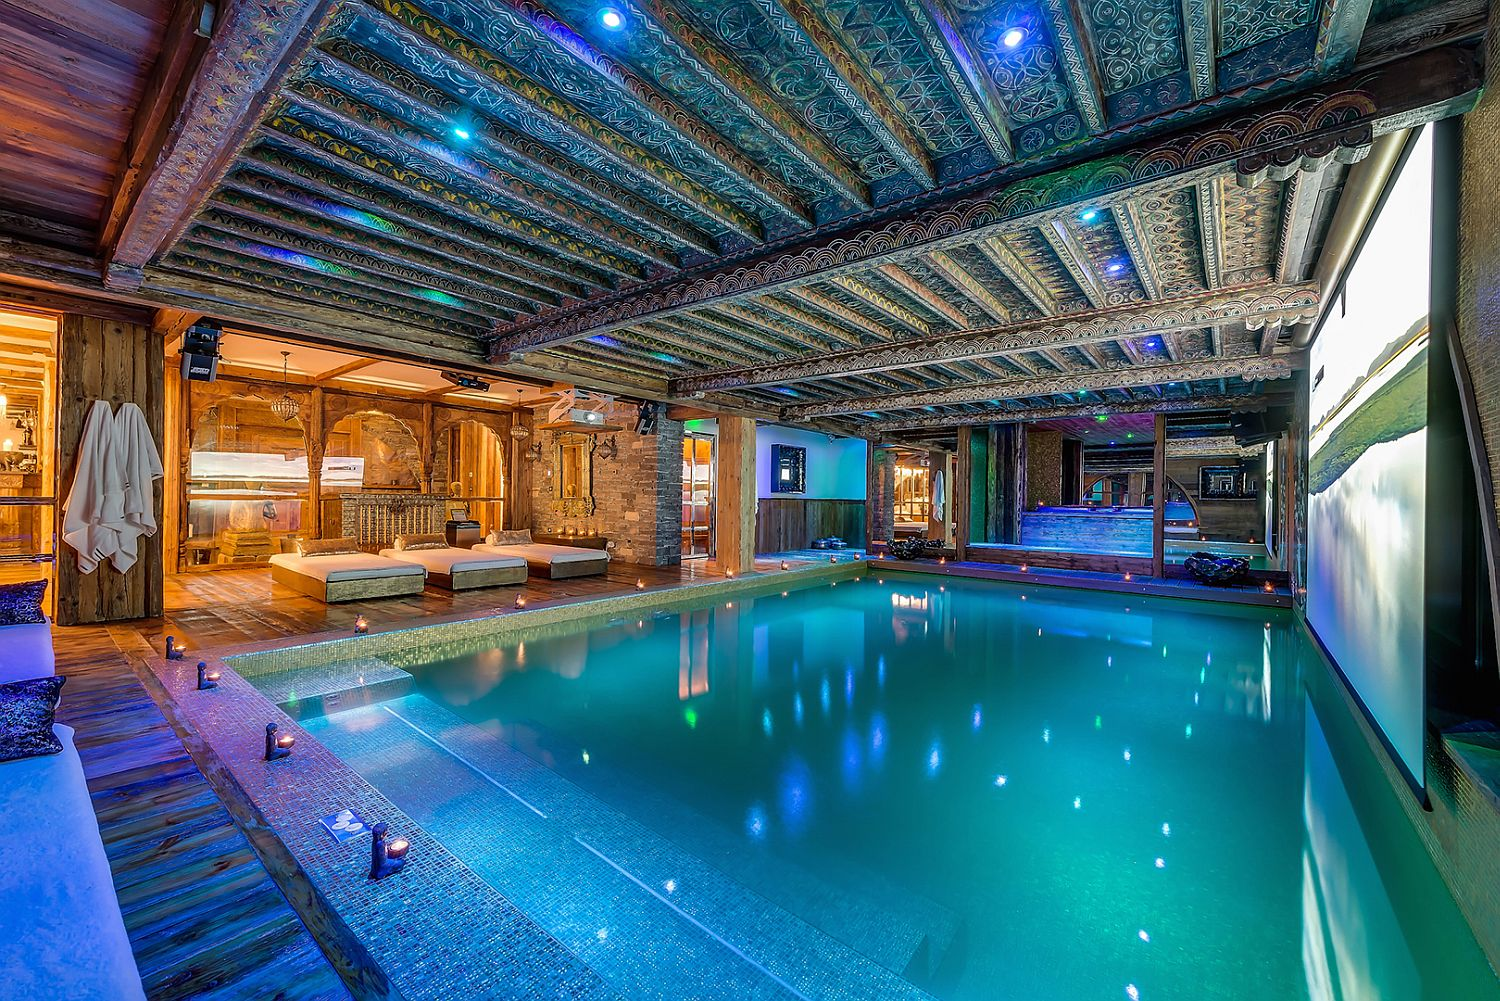 Spacious pool with warm jets is covered in gold leaf